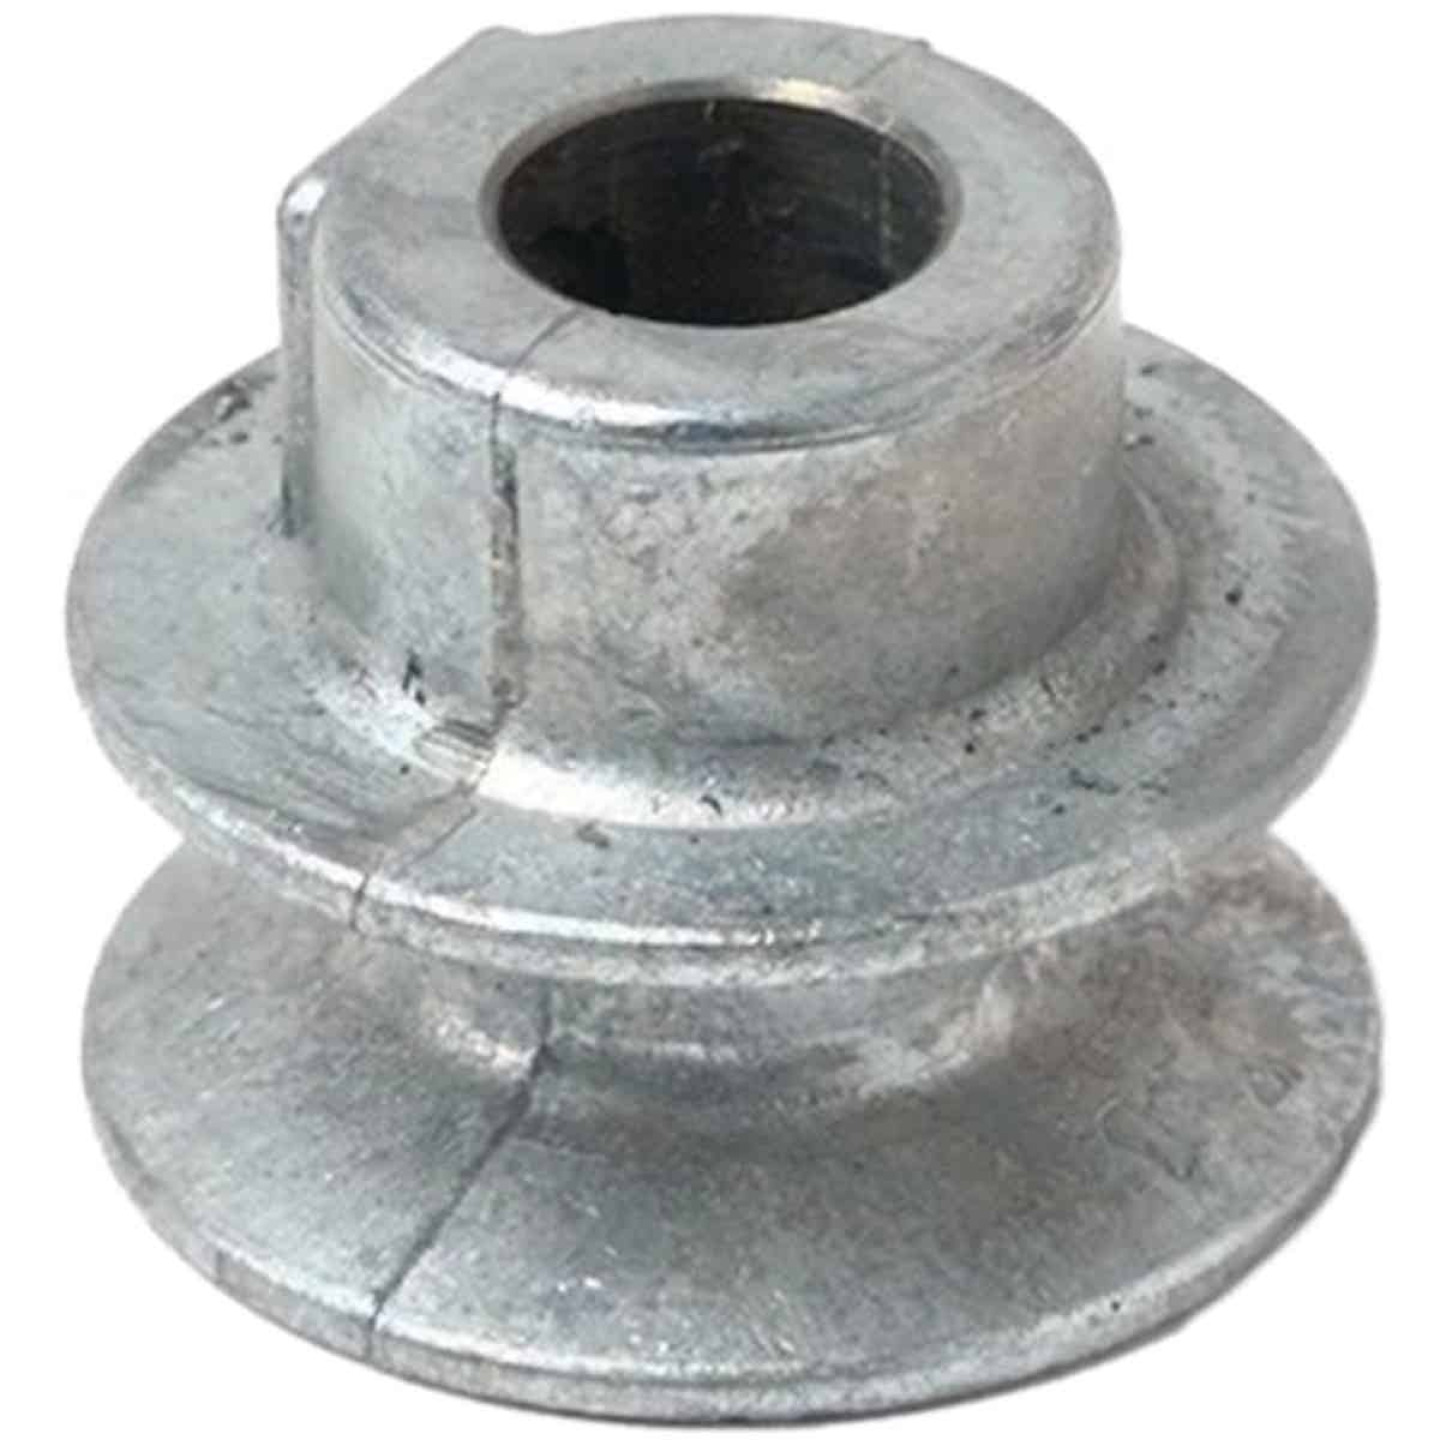 Chicago Die Casting 1-1/2 In. x 1/2 In. Single Groove Pulley Image 1